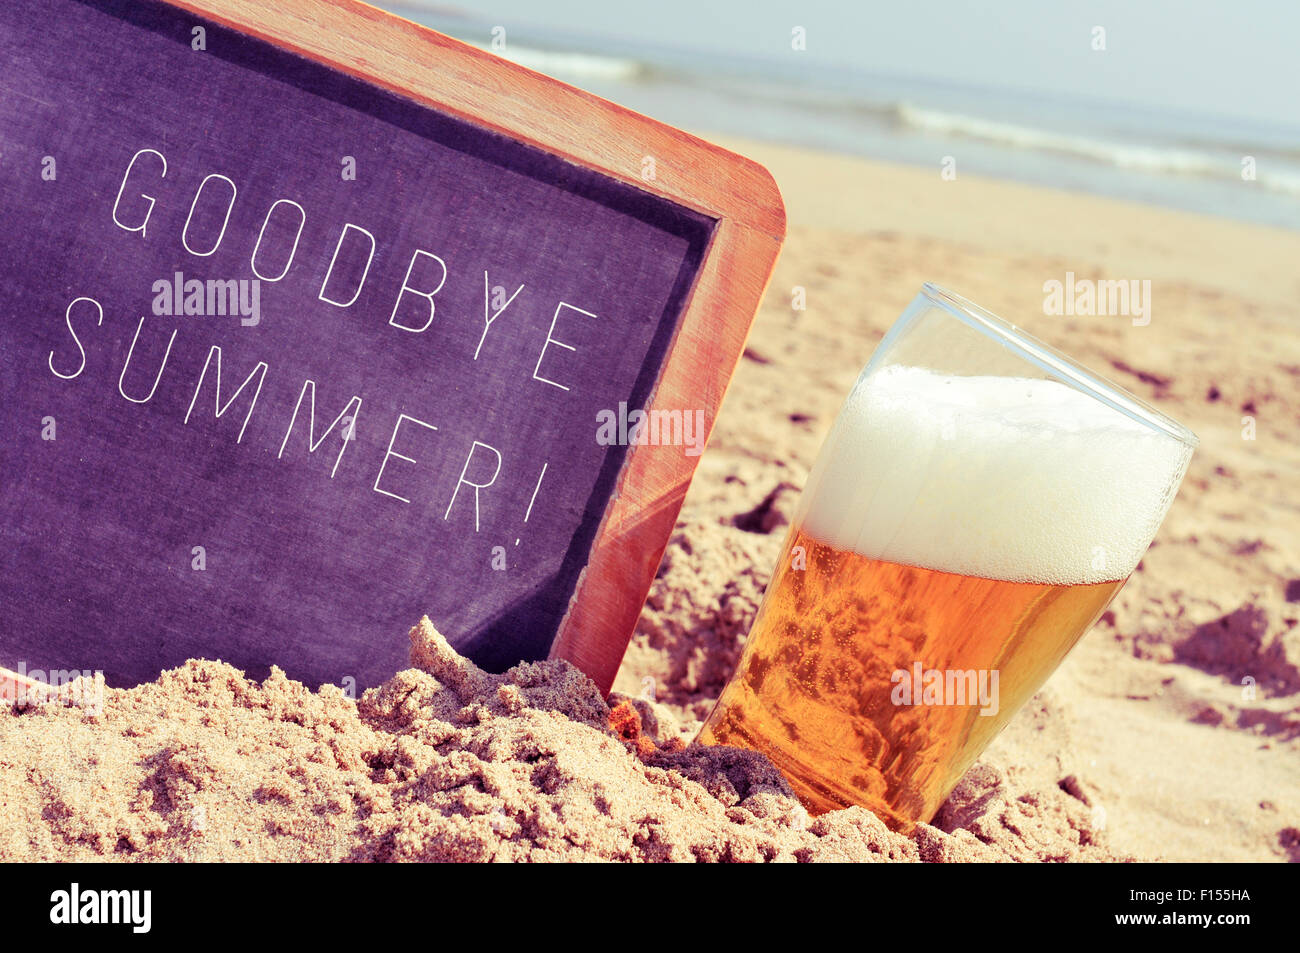 closeup of a chalkboard with the text goodbye summer written in it and a glass of beer, on the sand of a beach - Stock Image